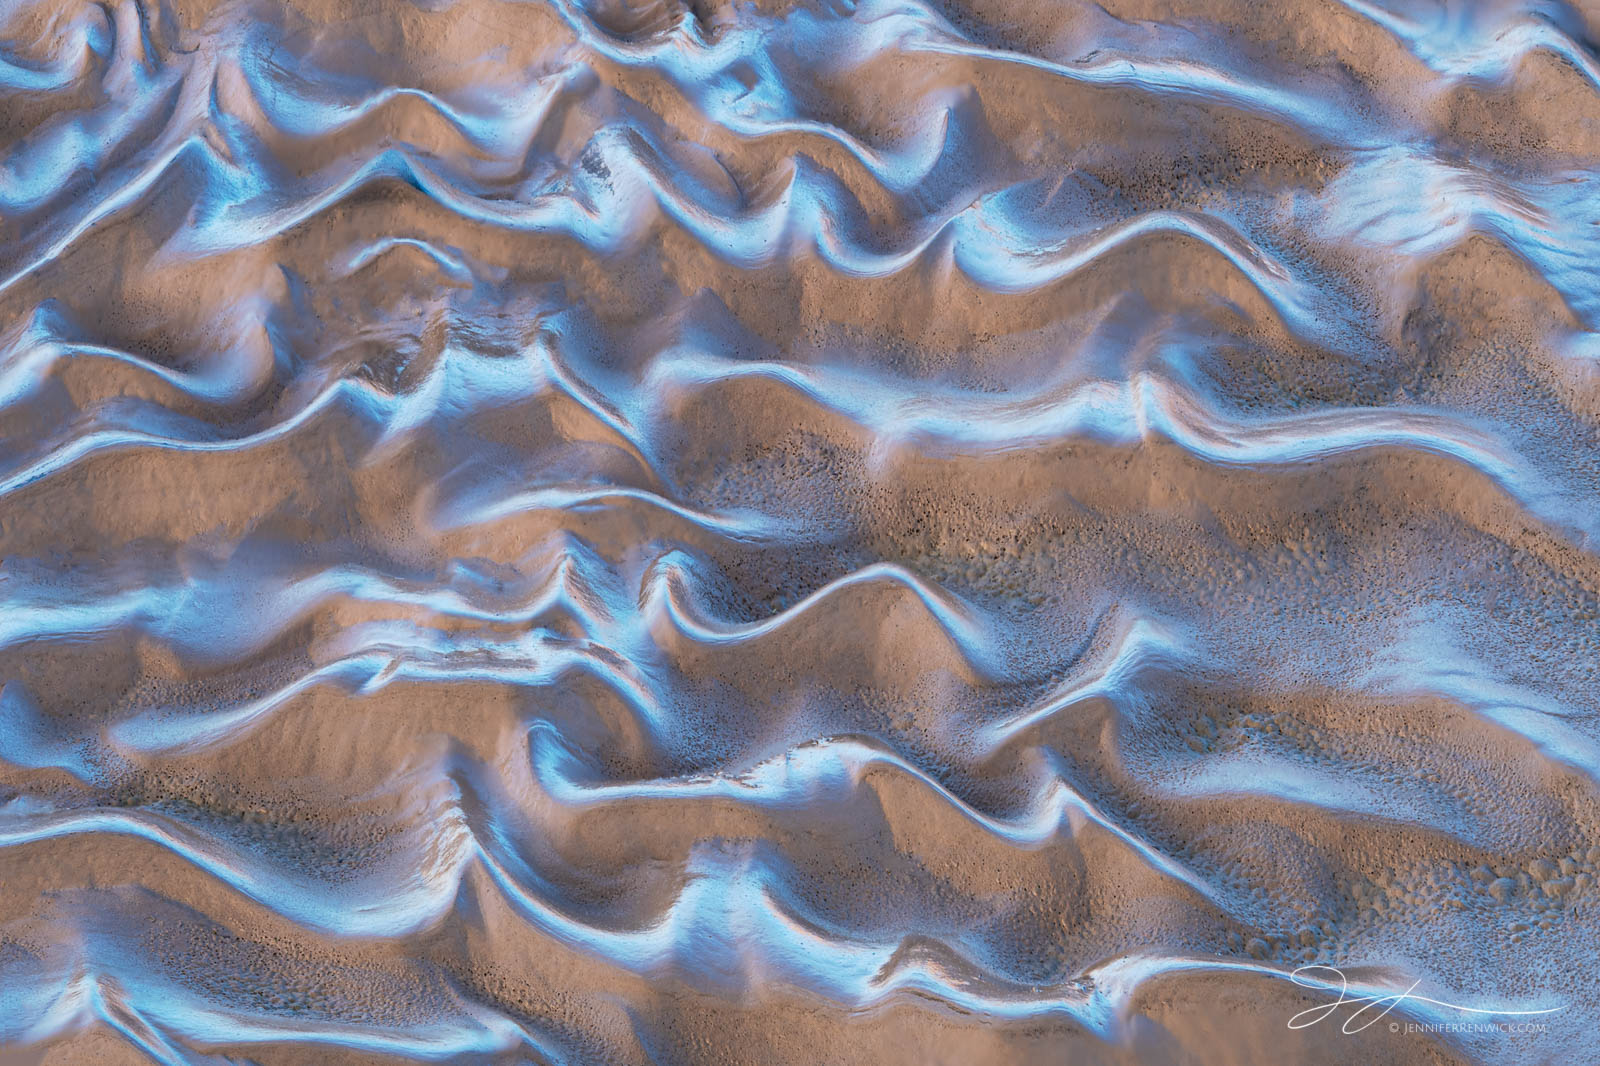 Death Valley National Park, Mojave Desert, abstract photography, California, ripples, desert, mud, textures, playa, photo